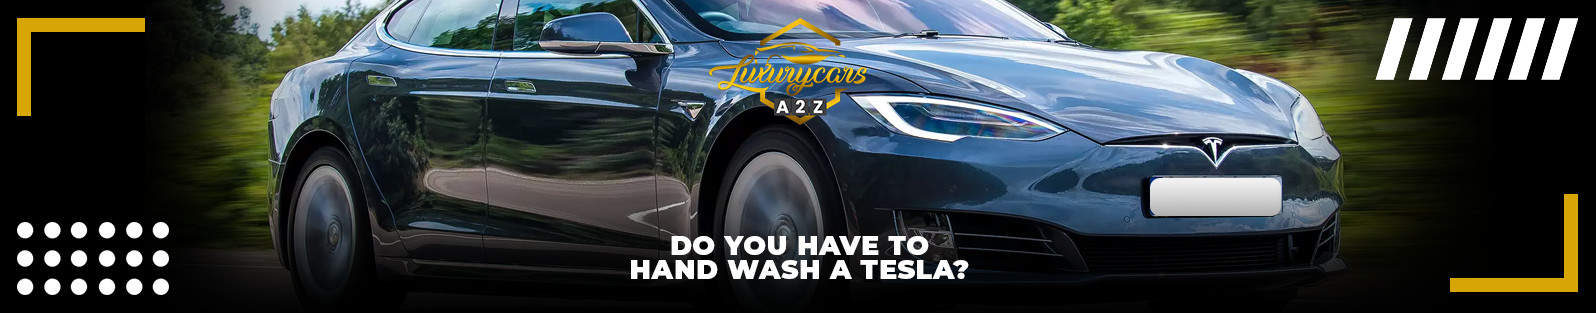 Do you have to hand wash a Tesla?